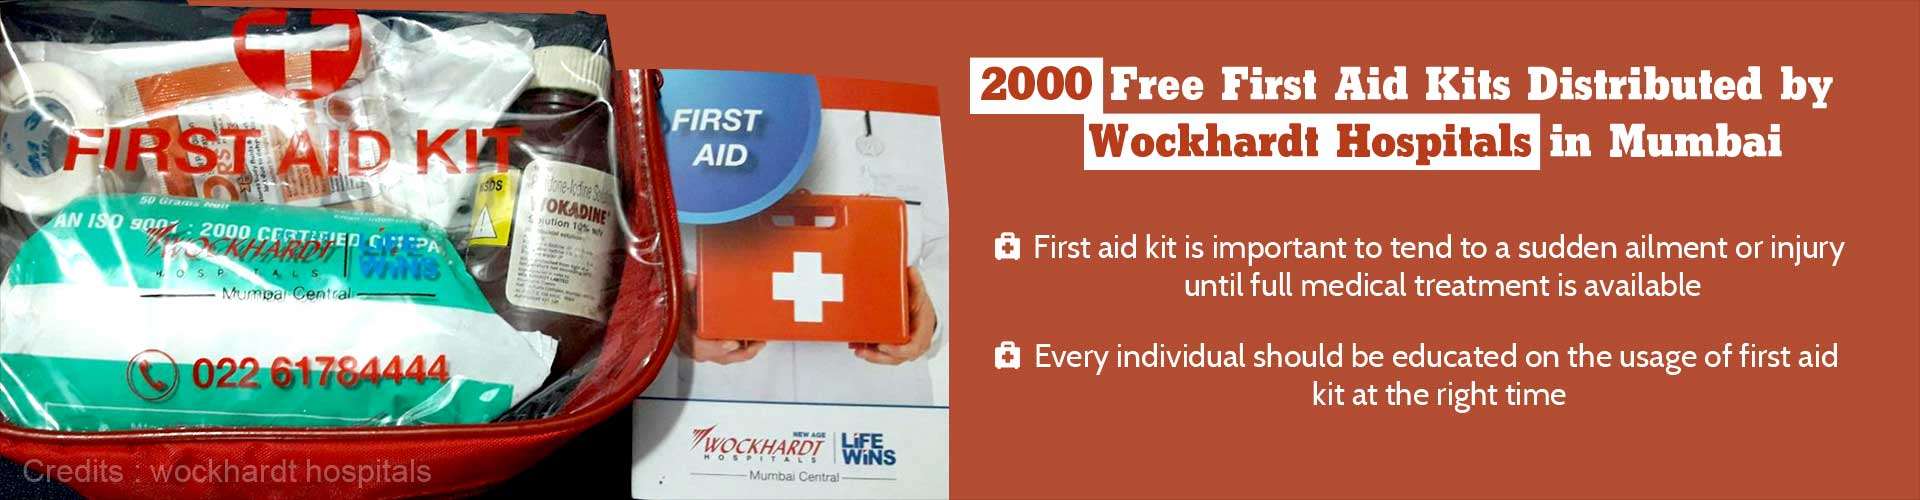 First Aid Kits Distributed for Free by Mumbai's Wockhardt Hospitals - An Exclusive Interview With Dr Parag Rindani